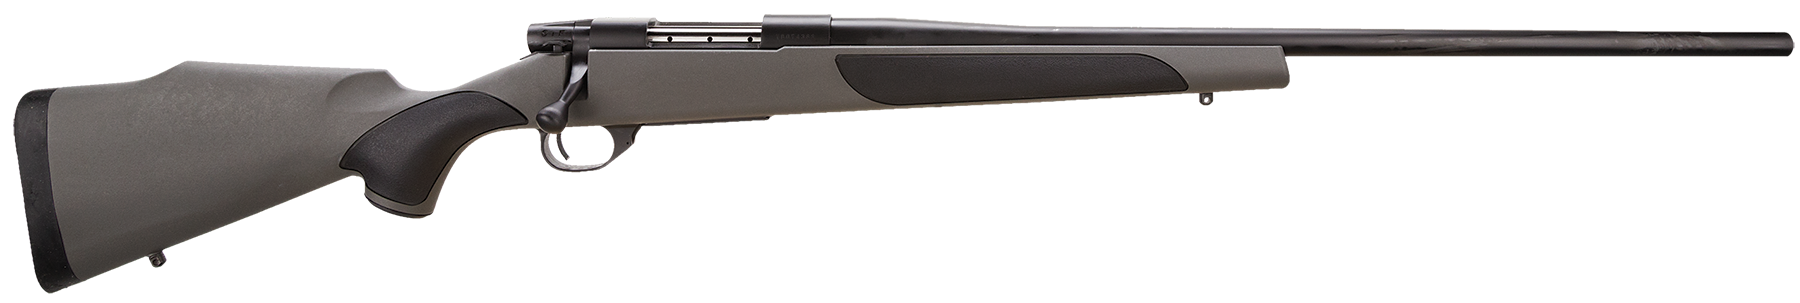 Weatherby Vanguard Synthetic 7mm-08 Rem 24